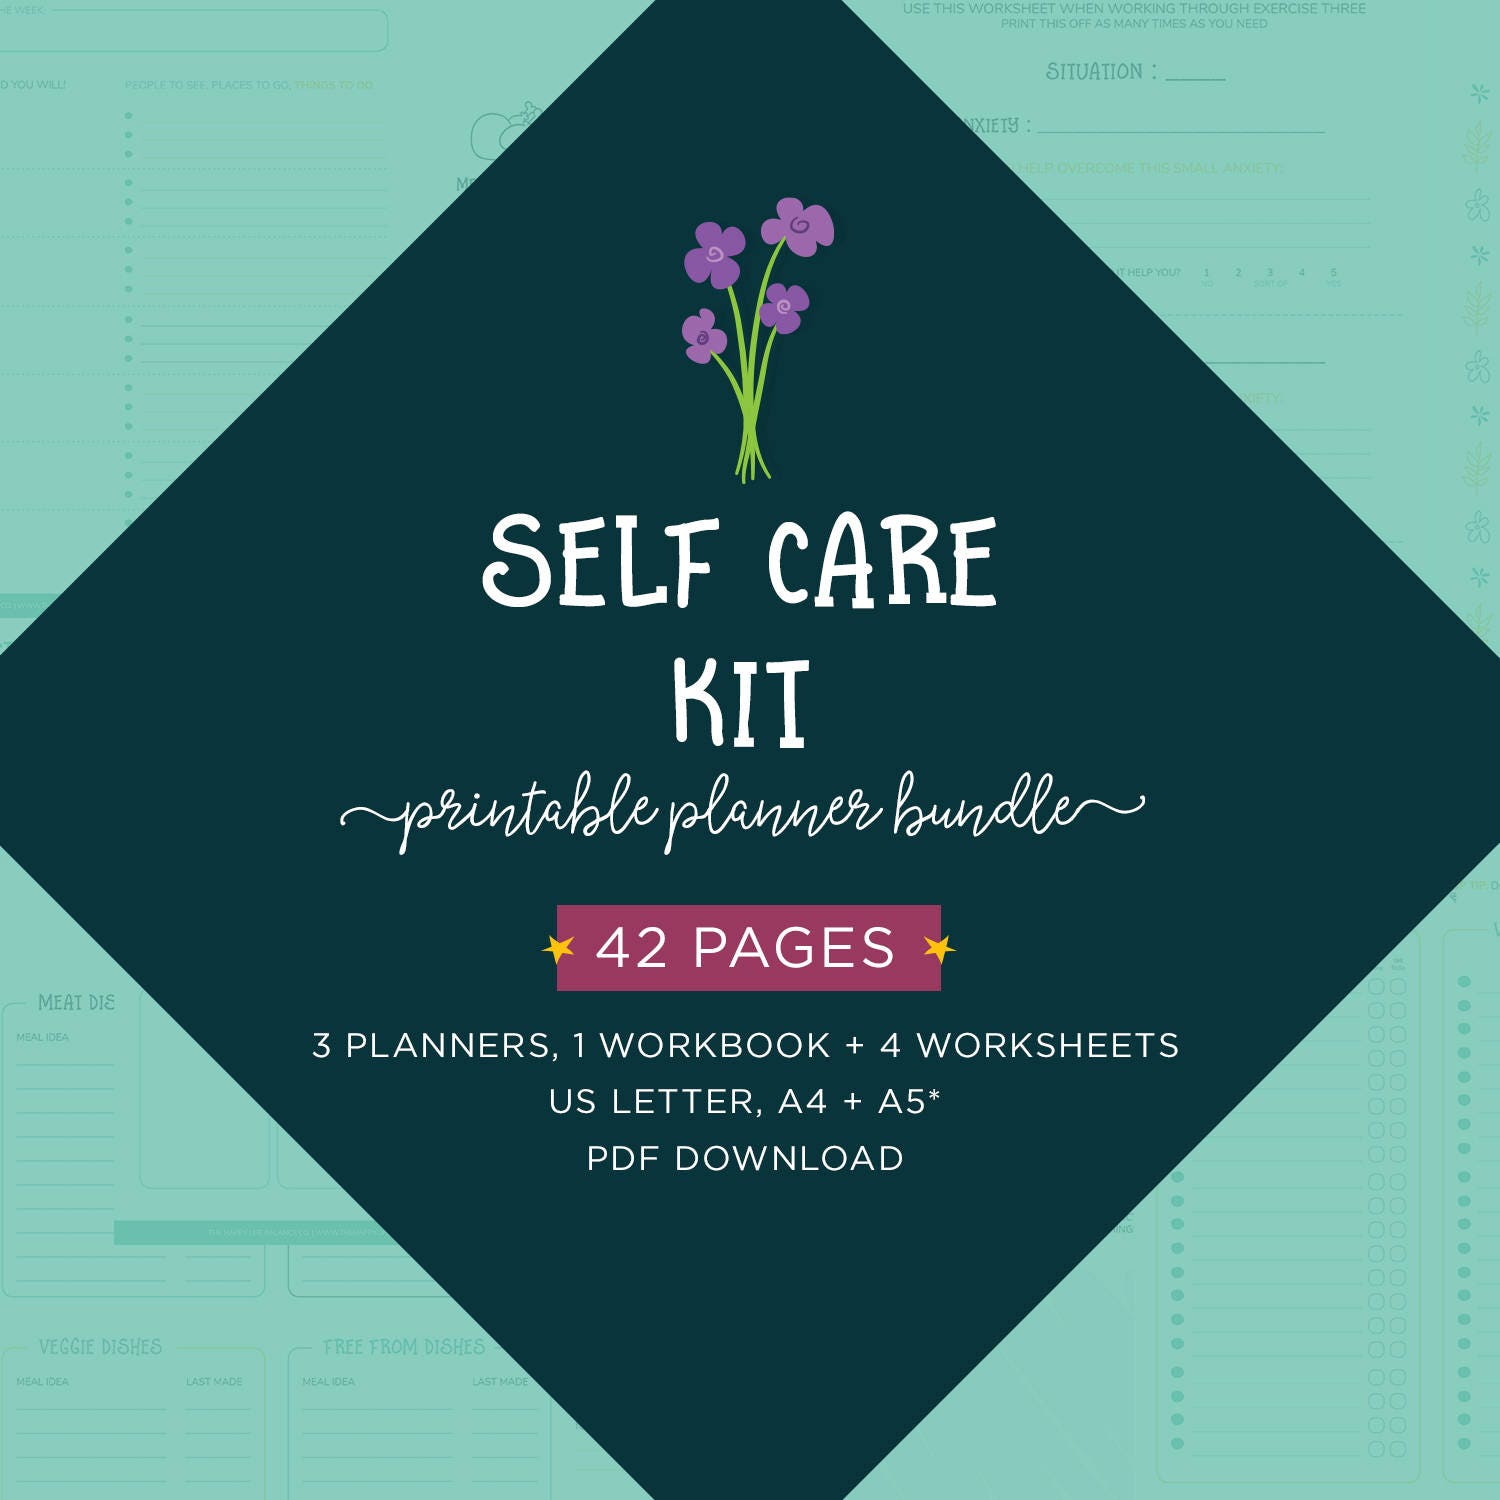 Self Care Kit Digital Planner Pack Planner Bundle Wellness